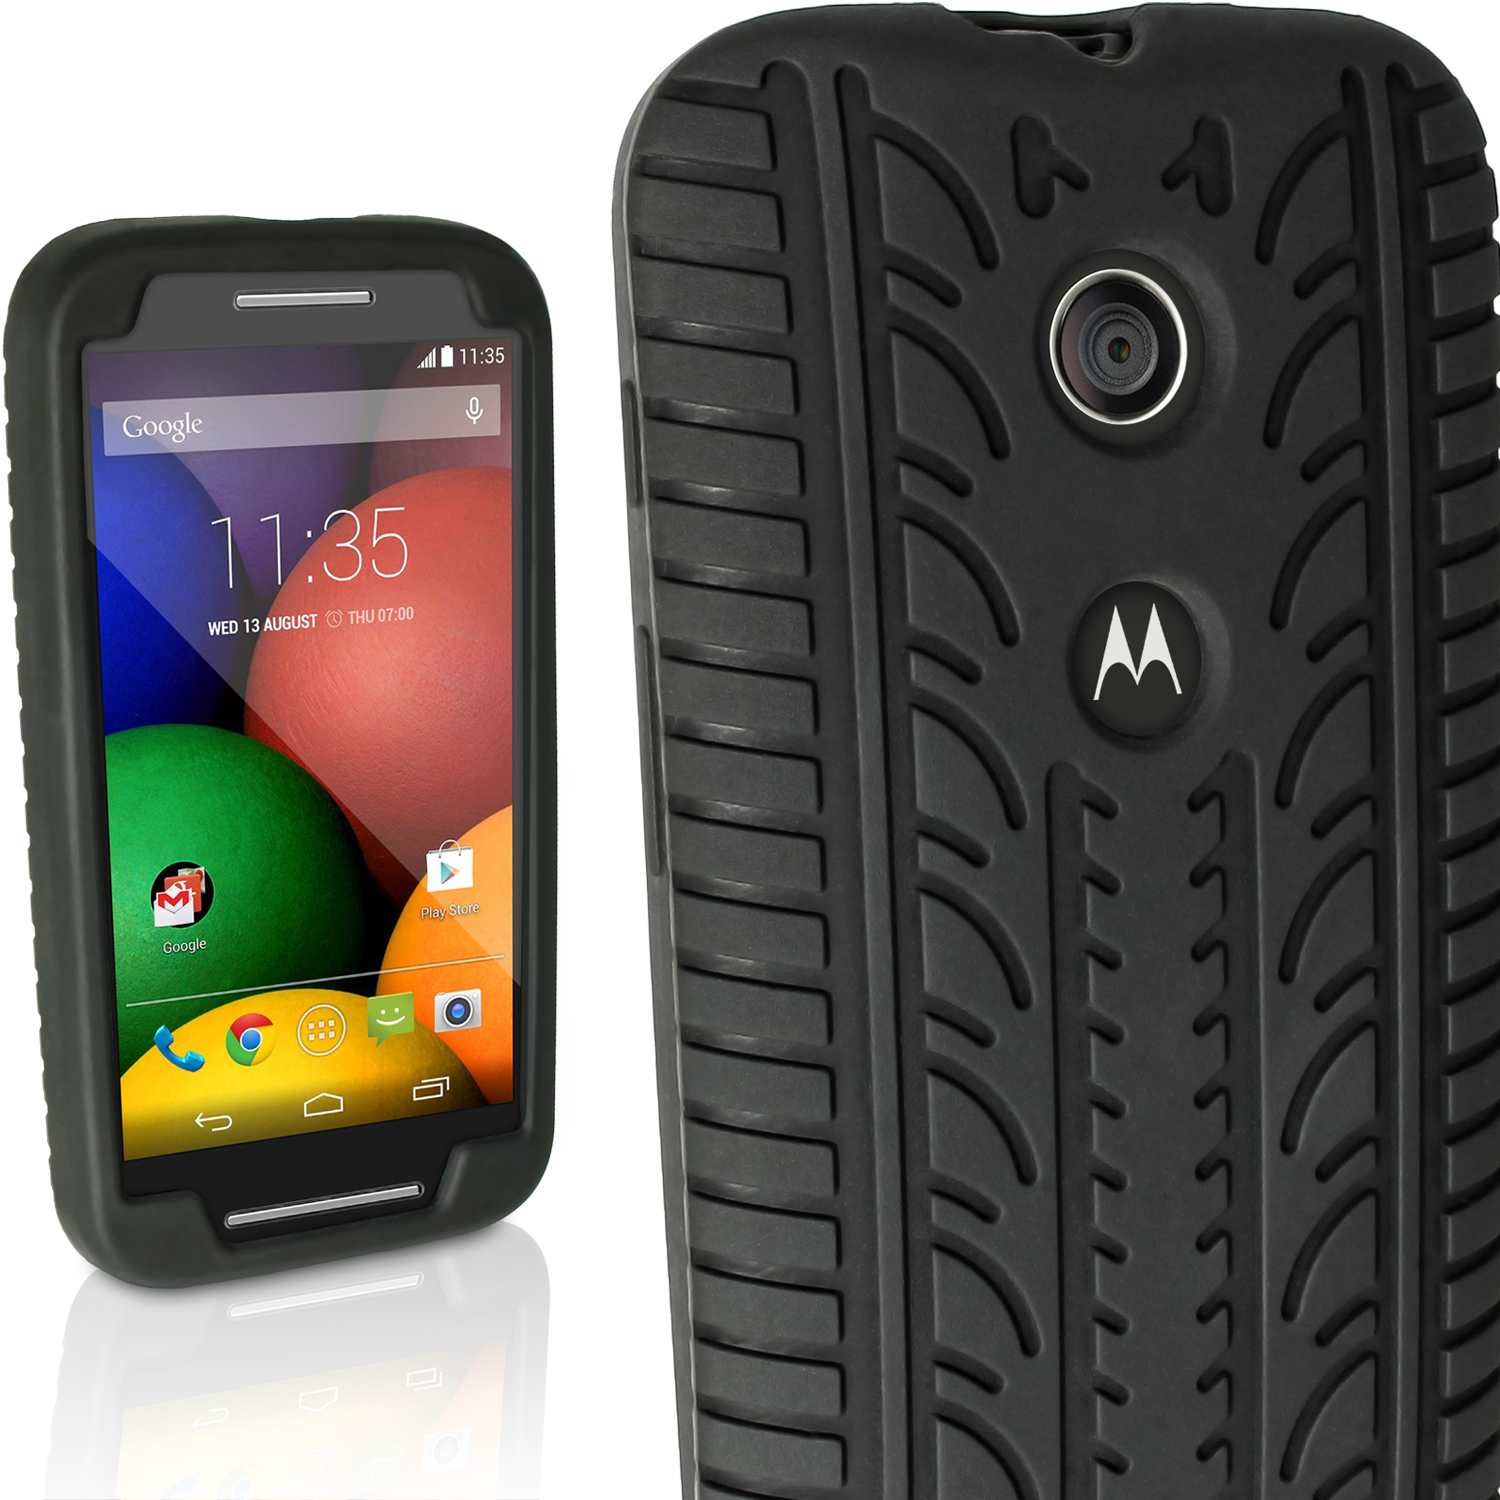 0ee38604ca1 Custom made silicone case for your Motorola Moto E XT1021 XT1022 XT1025 4GB  3G Android Smartphone. Provides protection against chips and scratches.